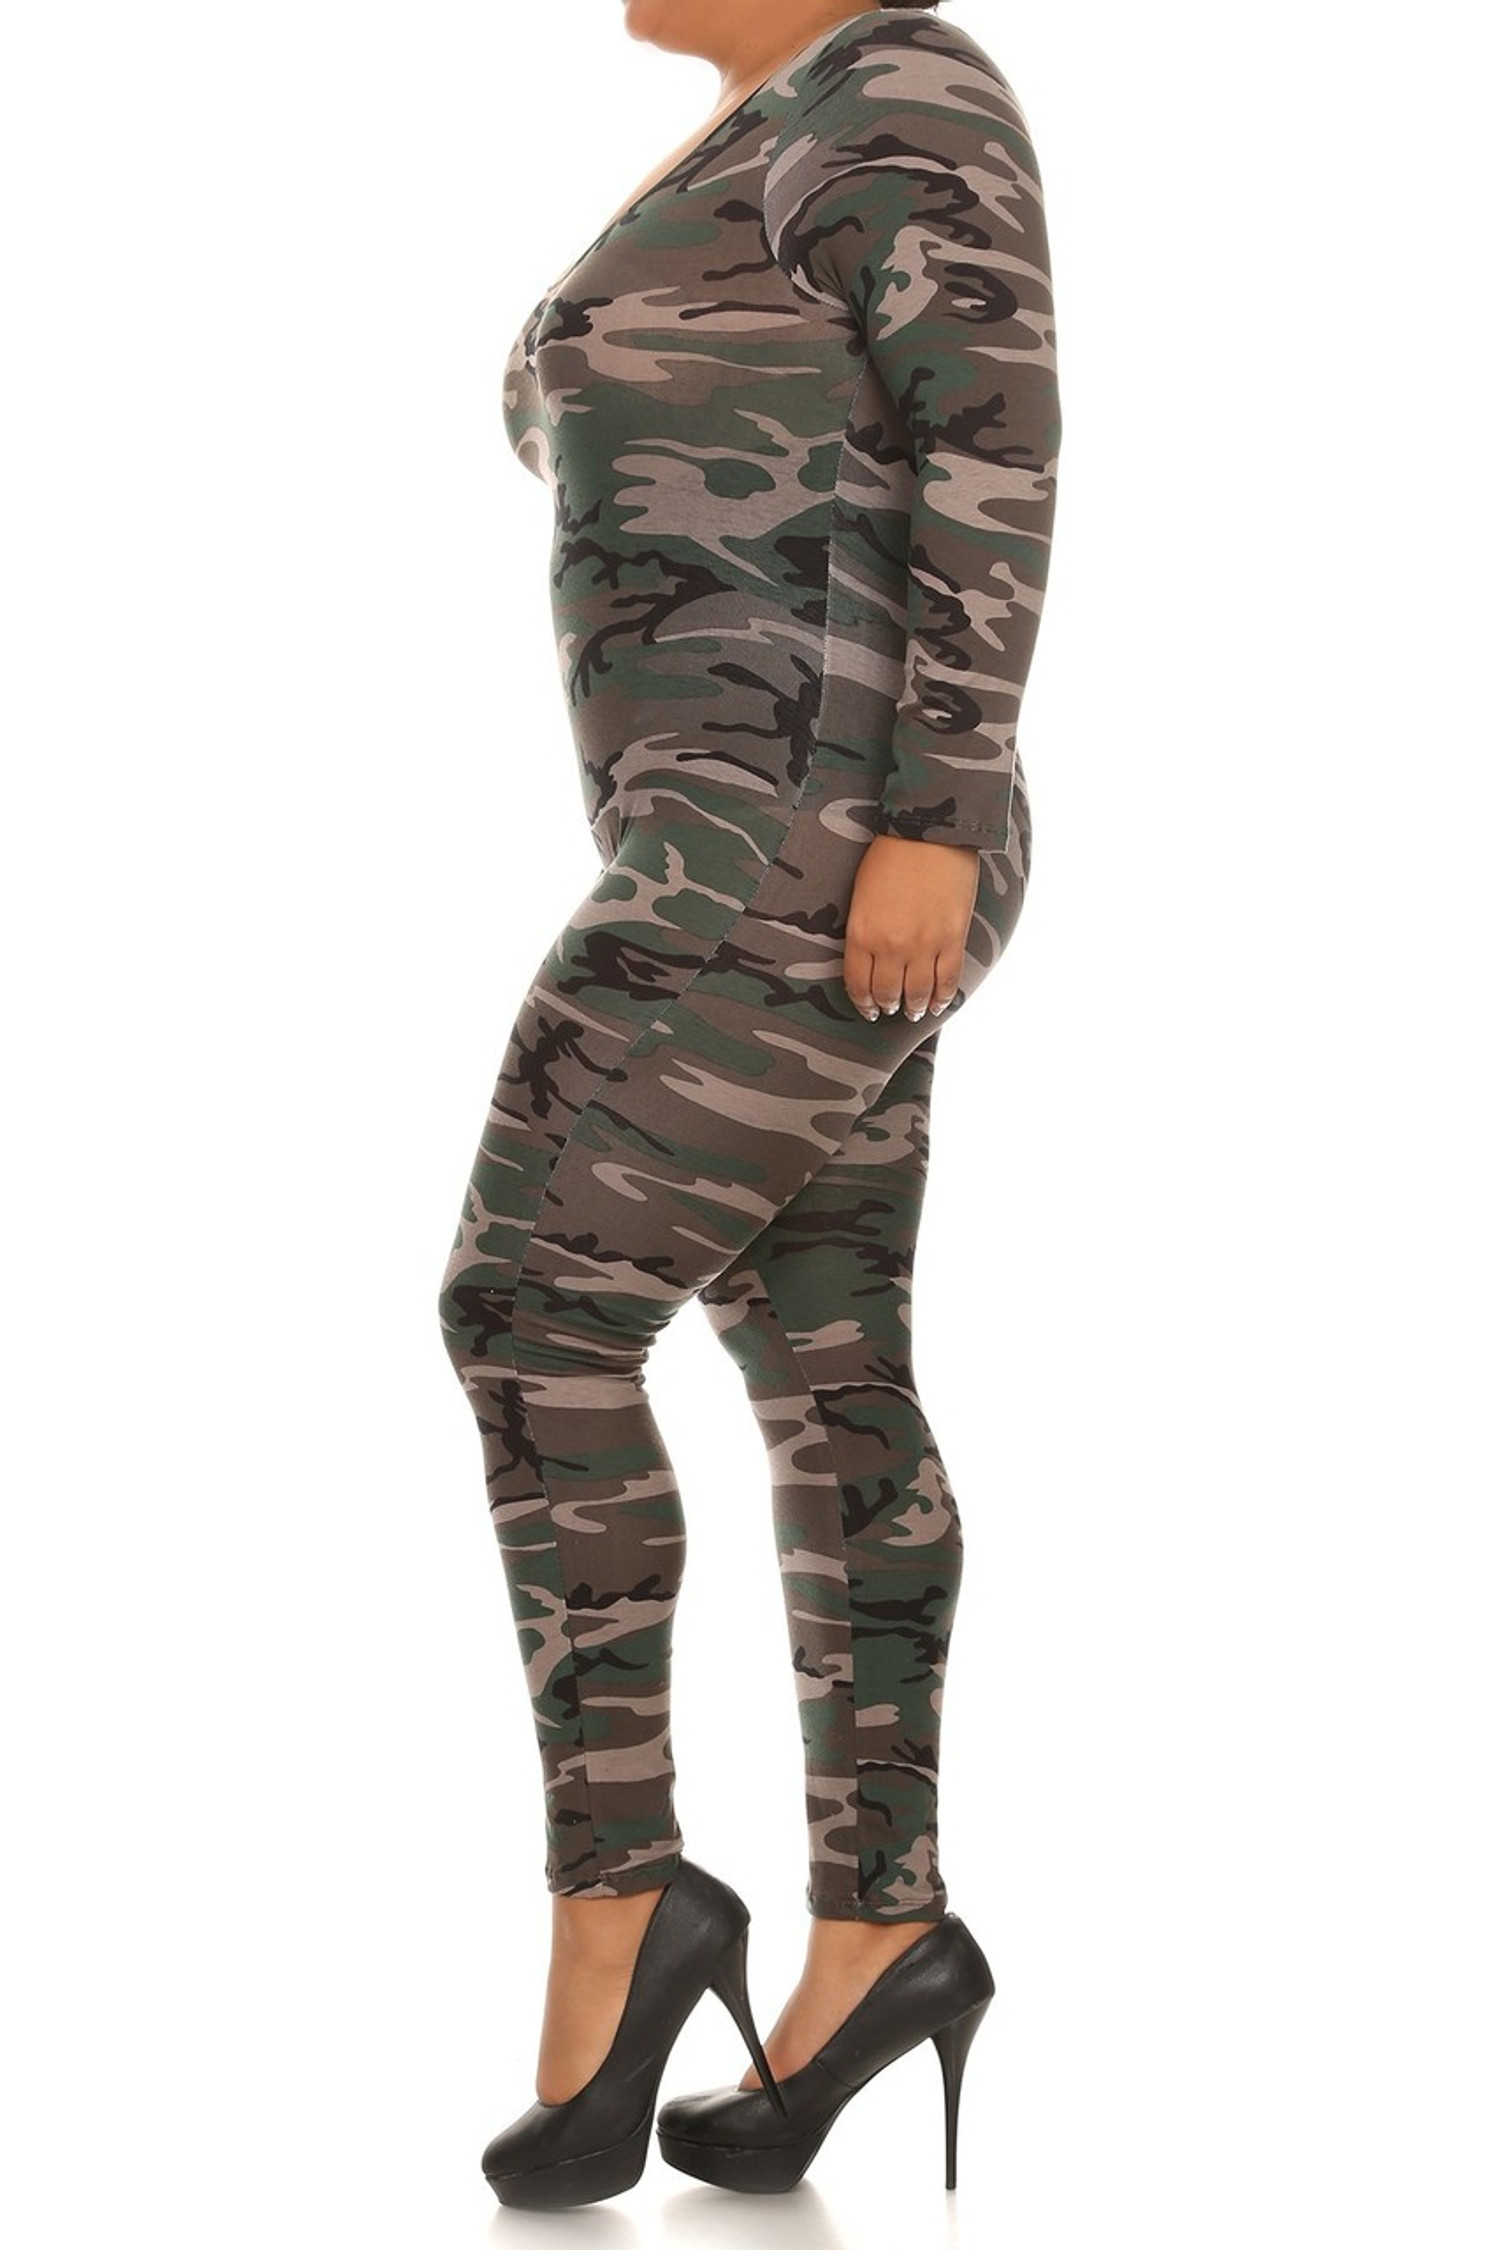 Side image of our plus size Camouflage Full Jumpsuit with its all over authentic camo print, full body coverage and made in the USA